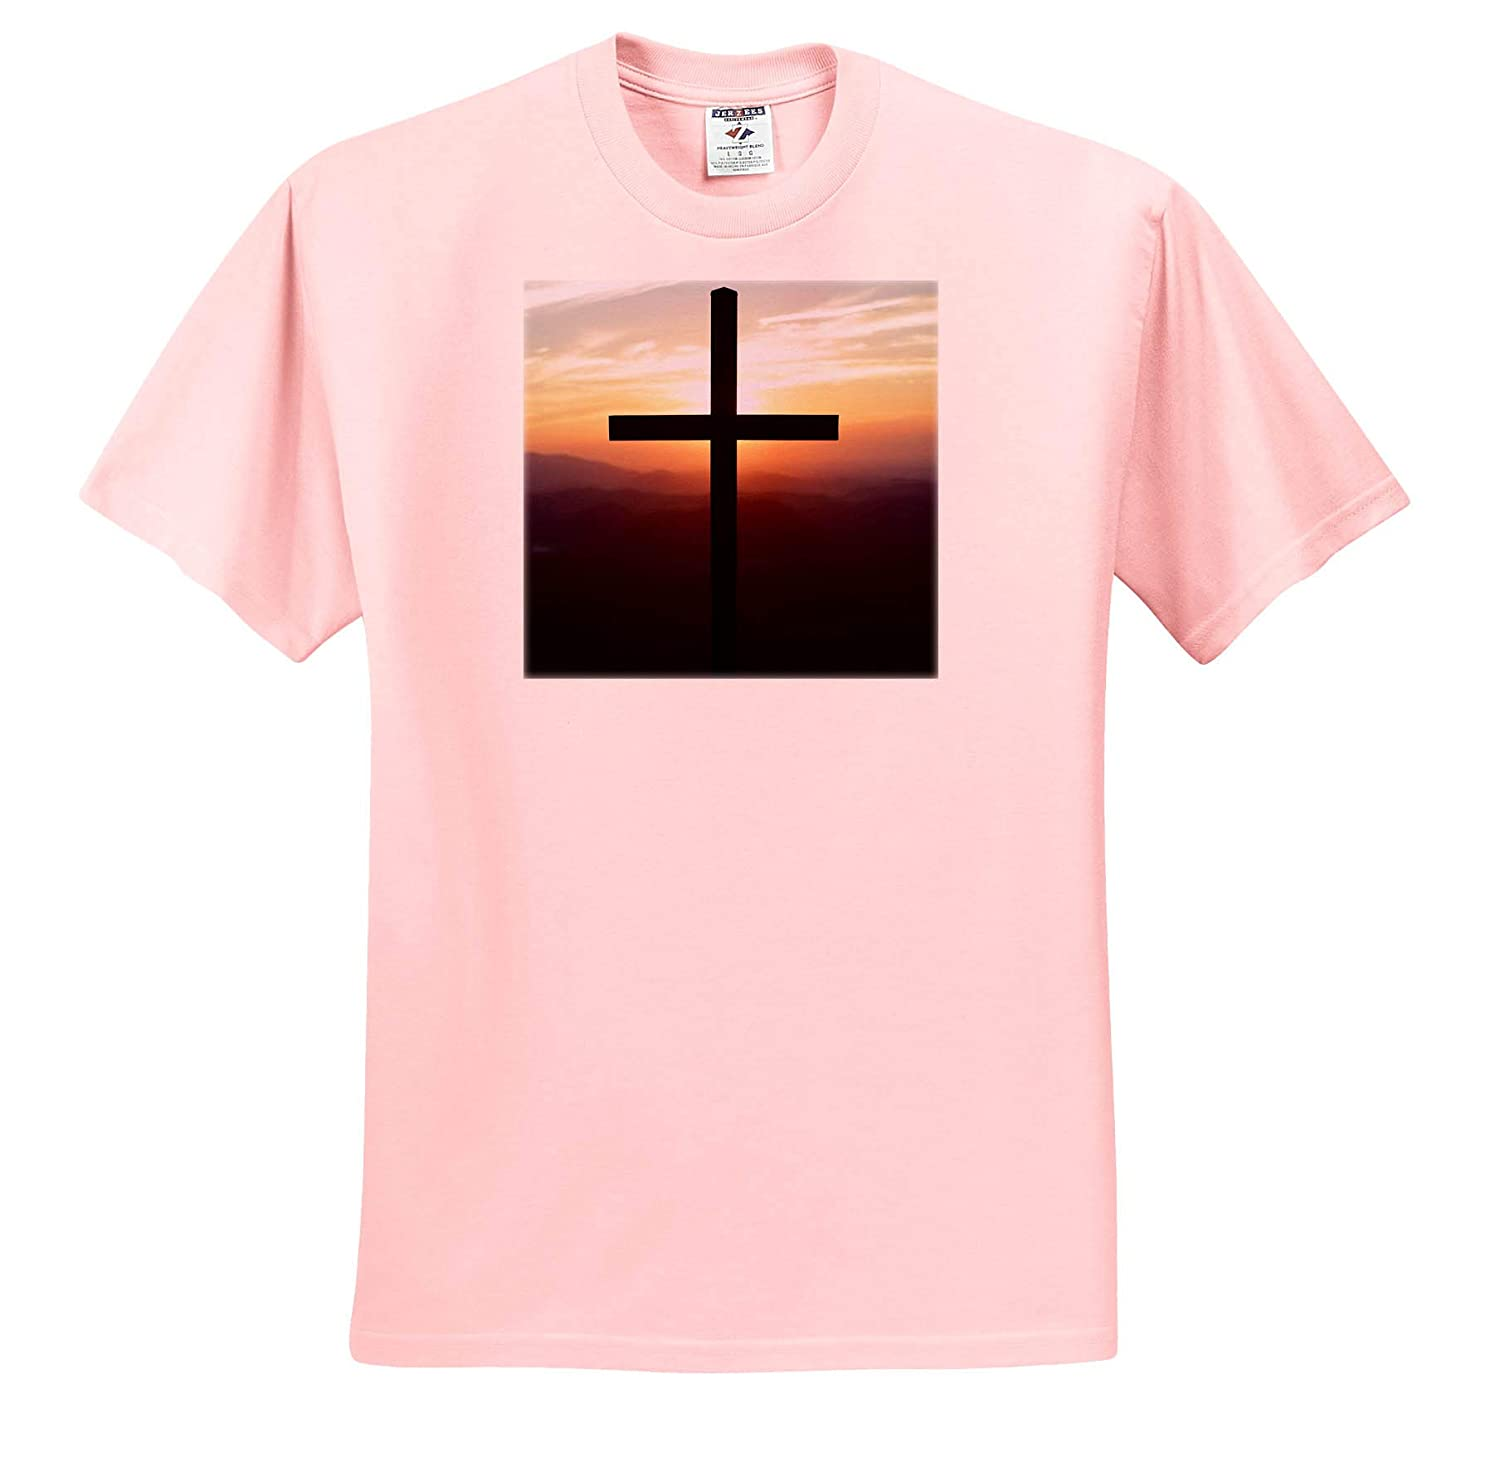 Close up Photo of The Cross During a Sunrise at Pretty Place Chapel Landscape - T-Shirts 3dRose Stamp City